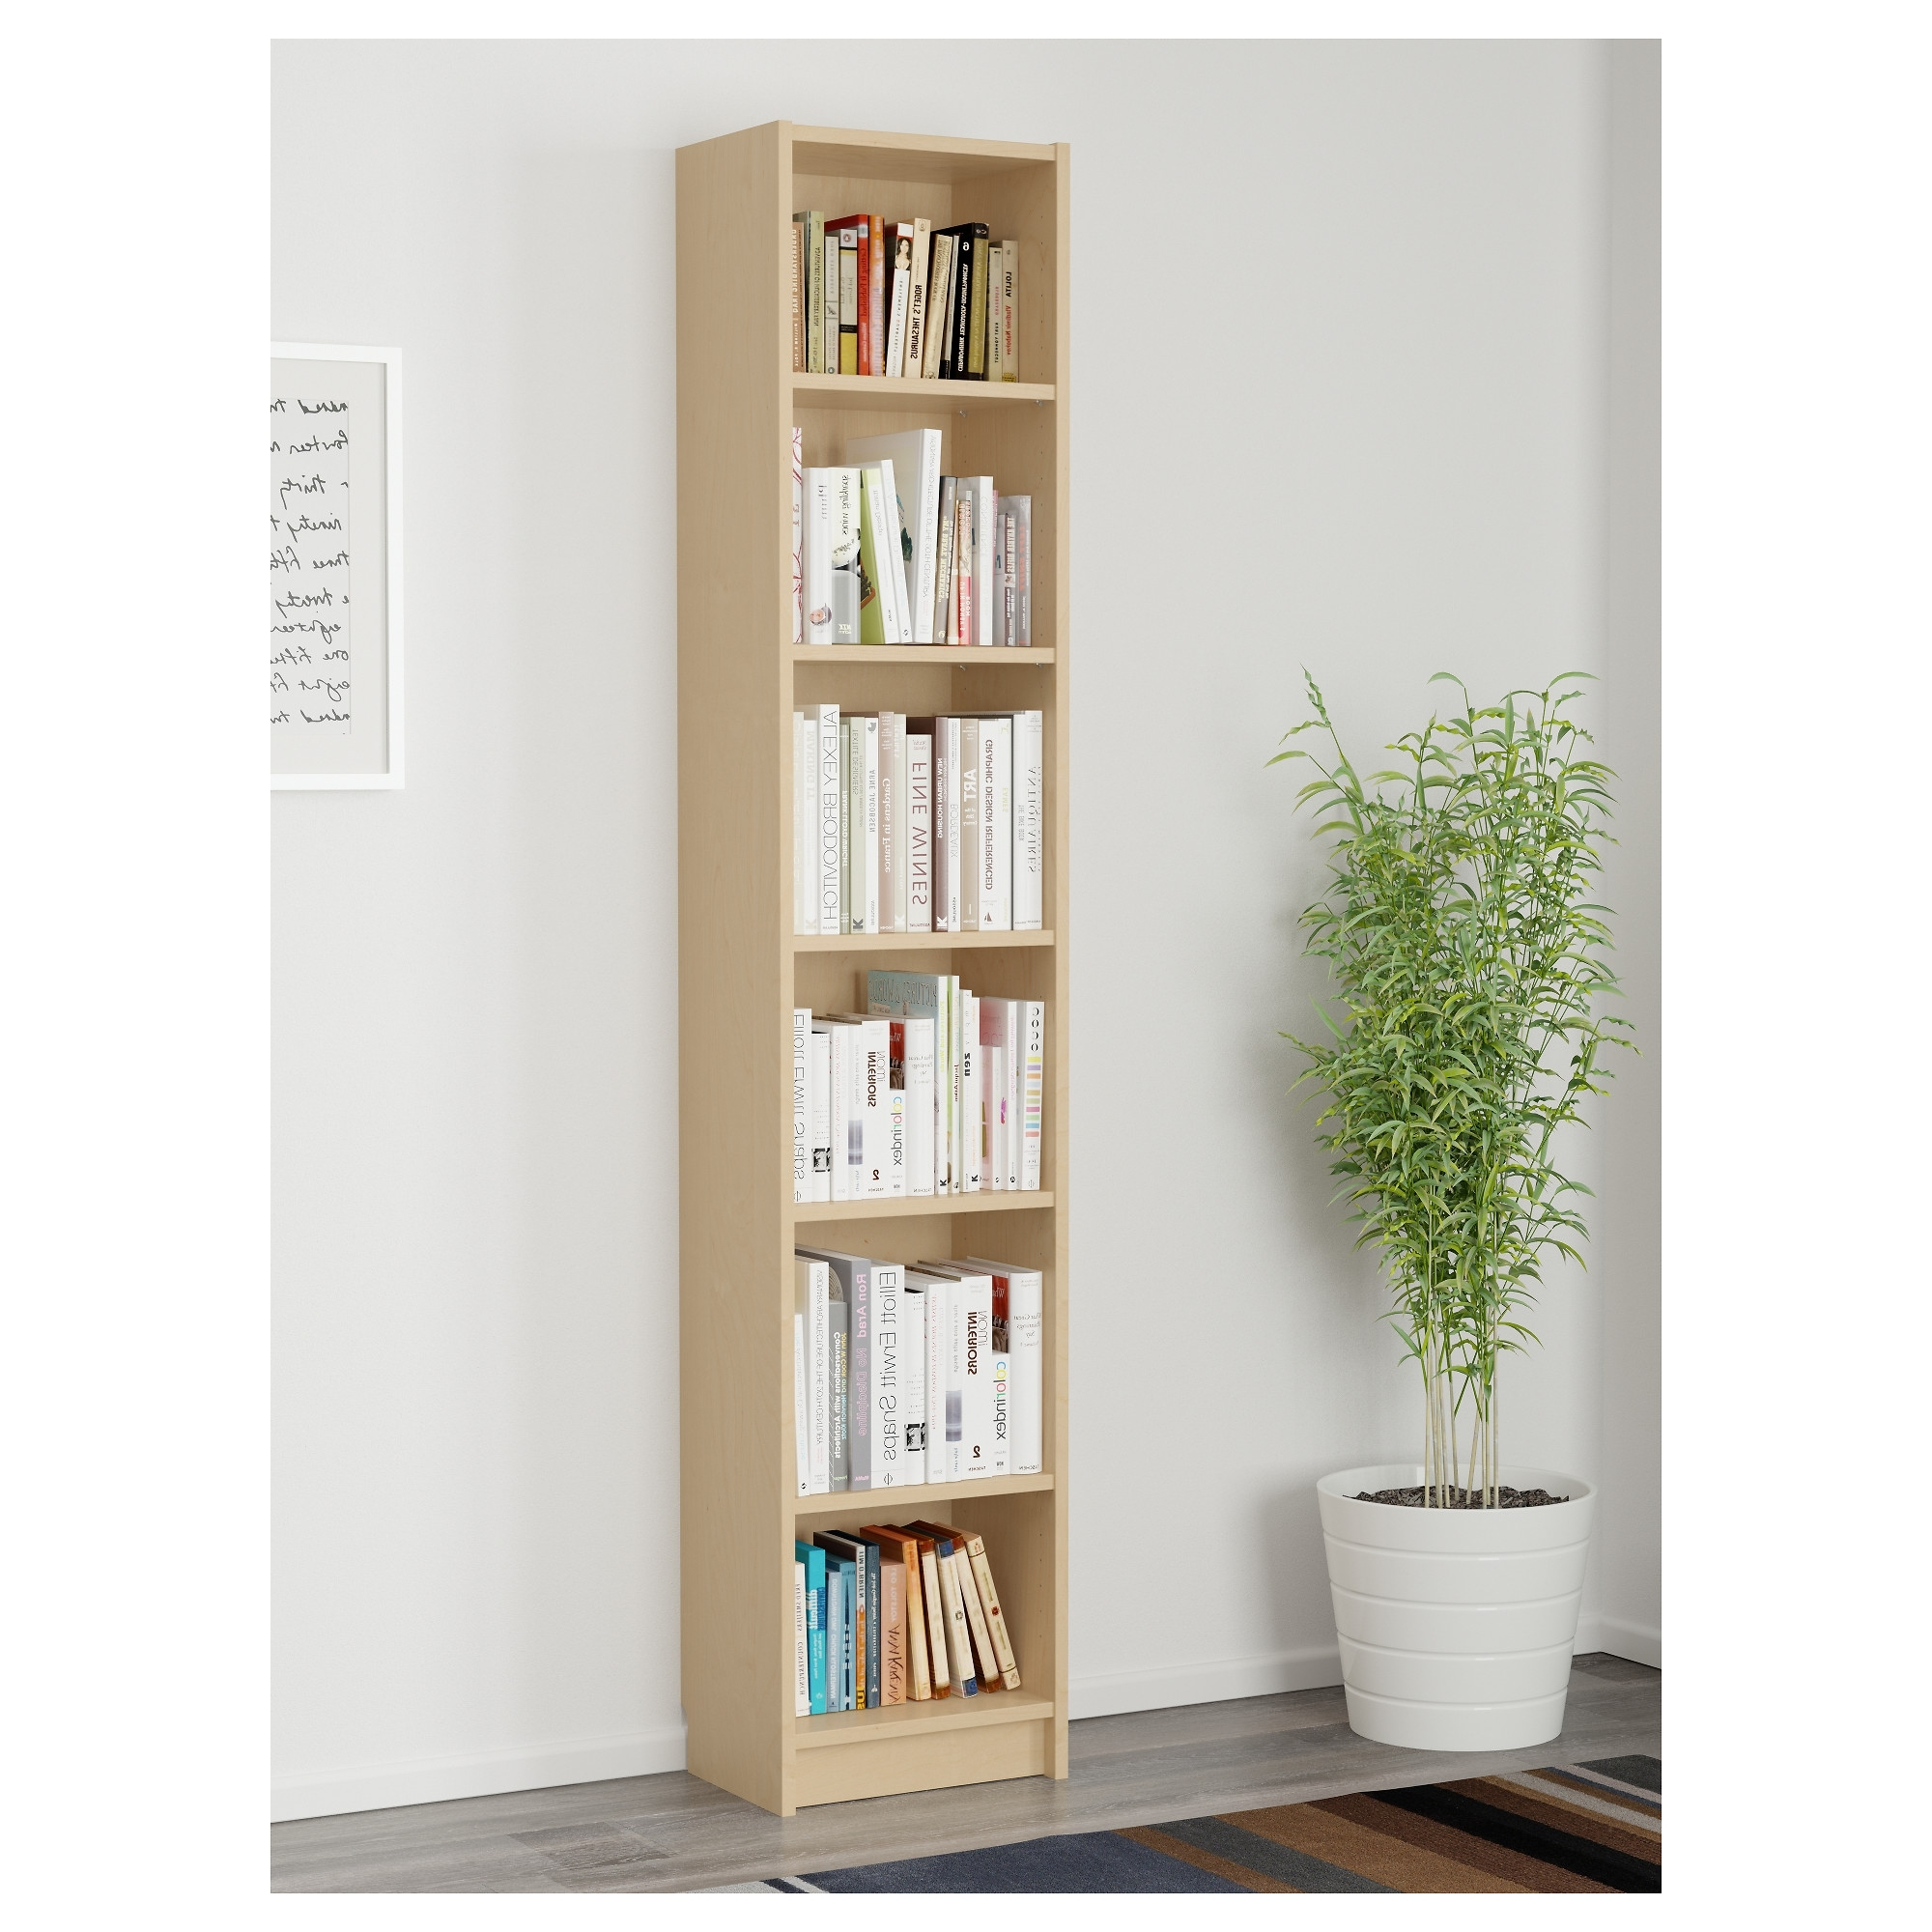 2018 Ikea Bookcases With Billy Bookcase – White – Ikea (View 2 of 15)